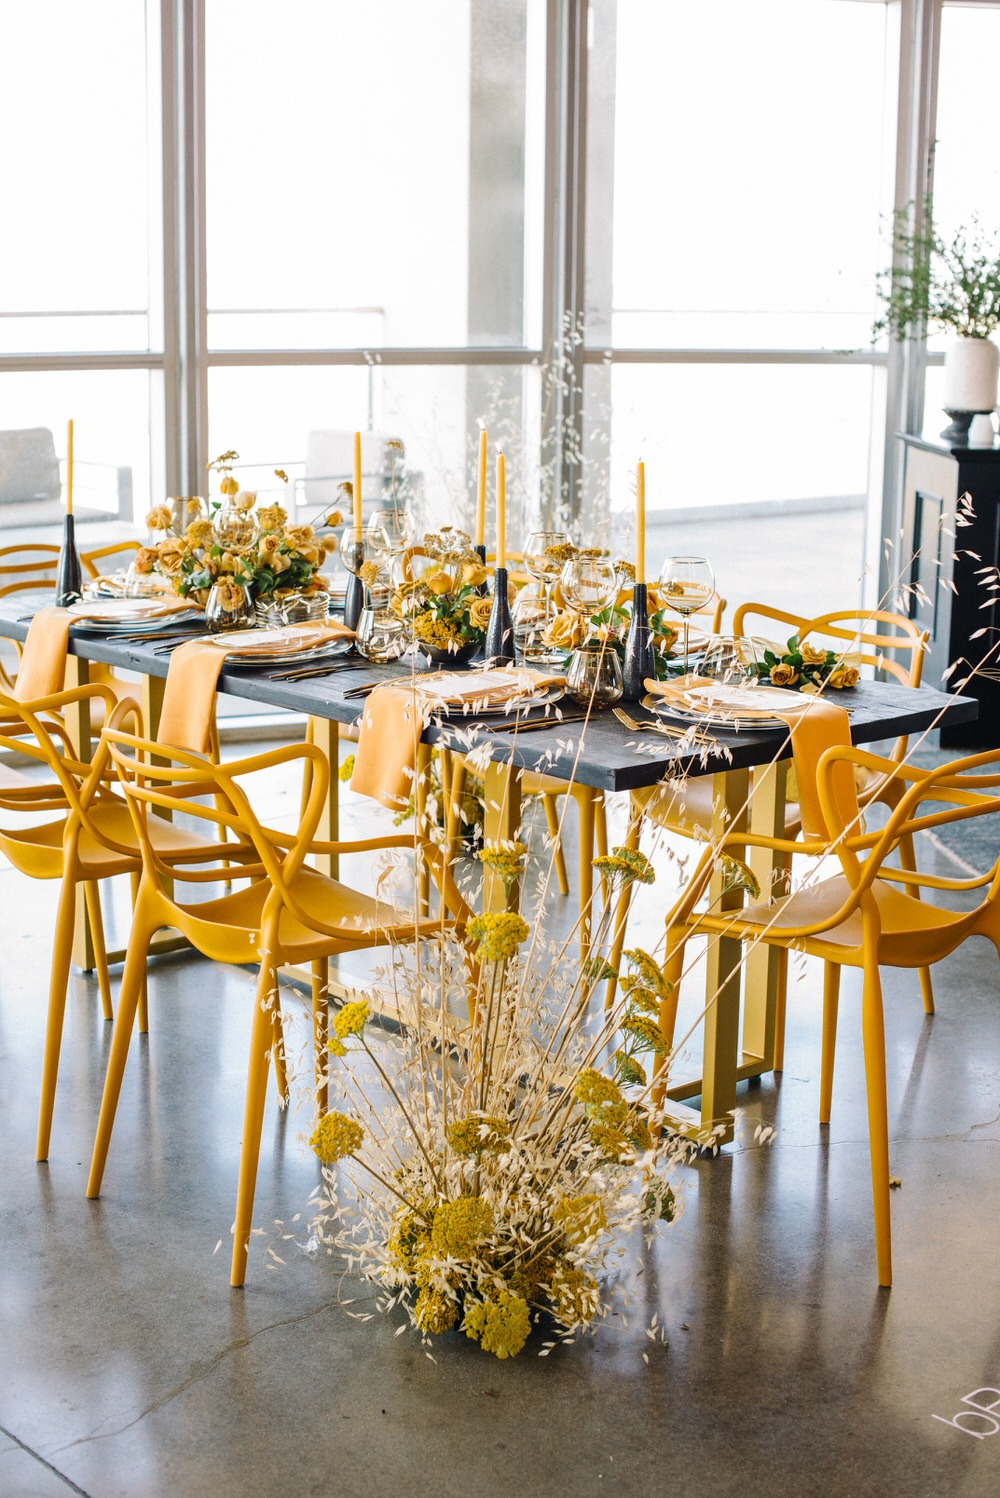 Architectural table design featuring yellow chairs and candles muted by black and gray table top decor.